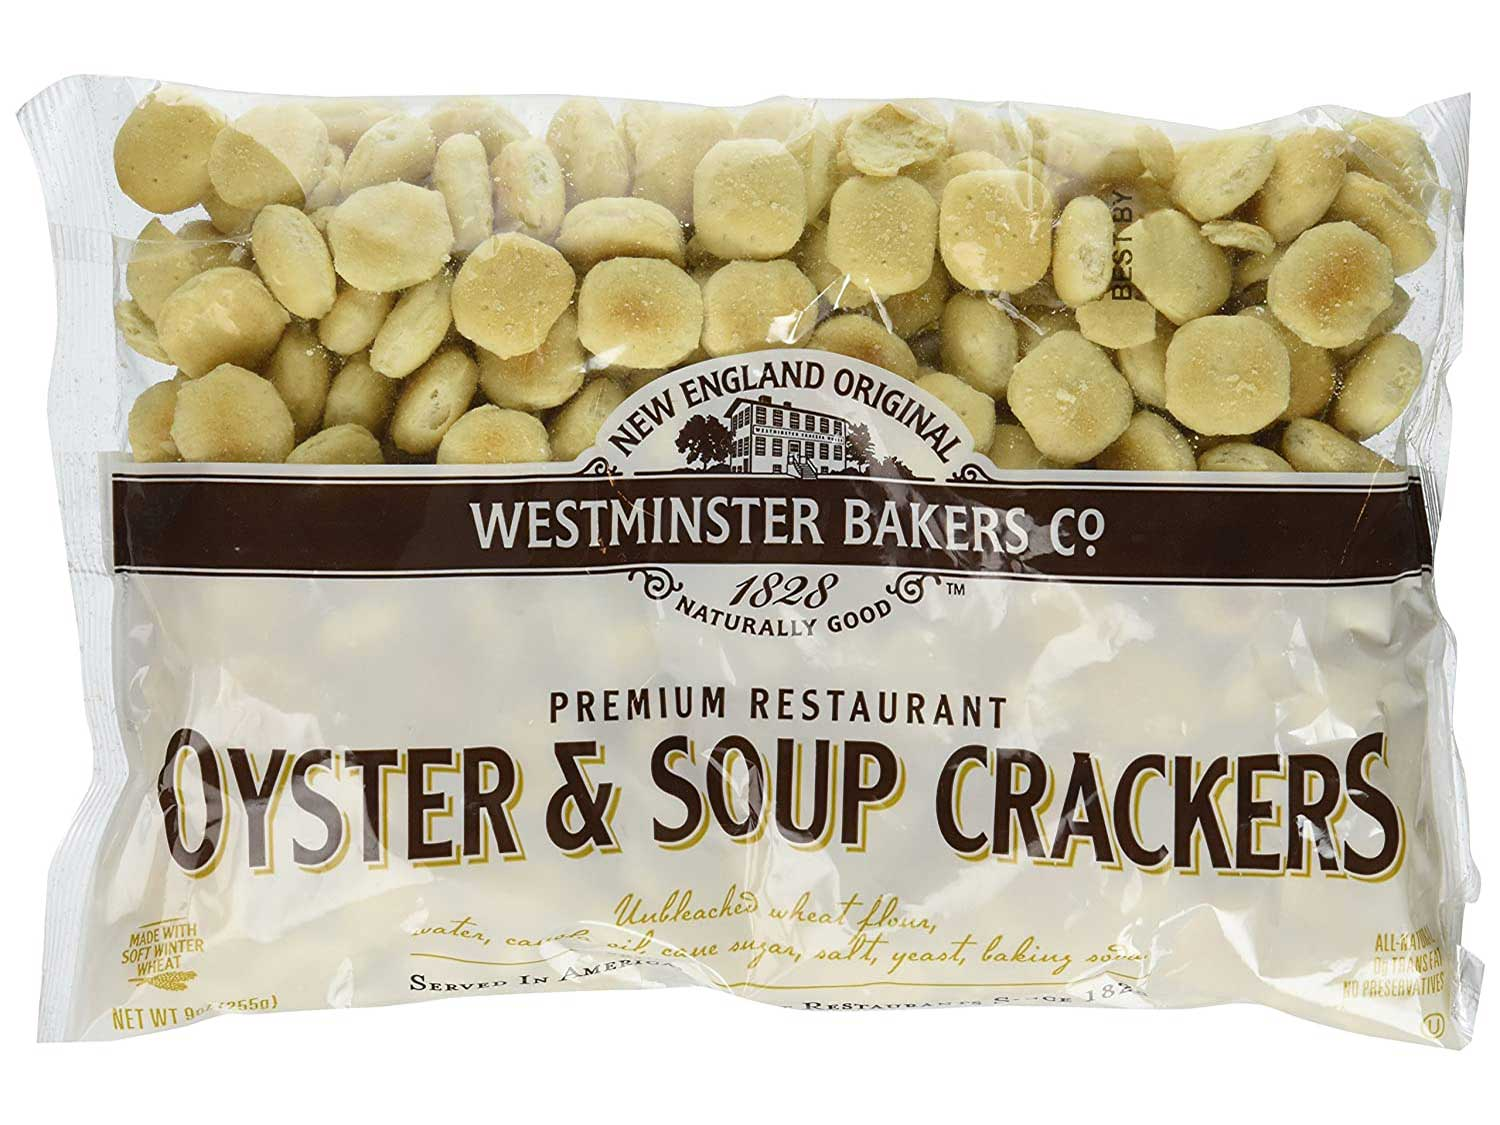 New England Original Westminster Bakeries Oyster & Soup Crackers (3 Pack)